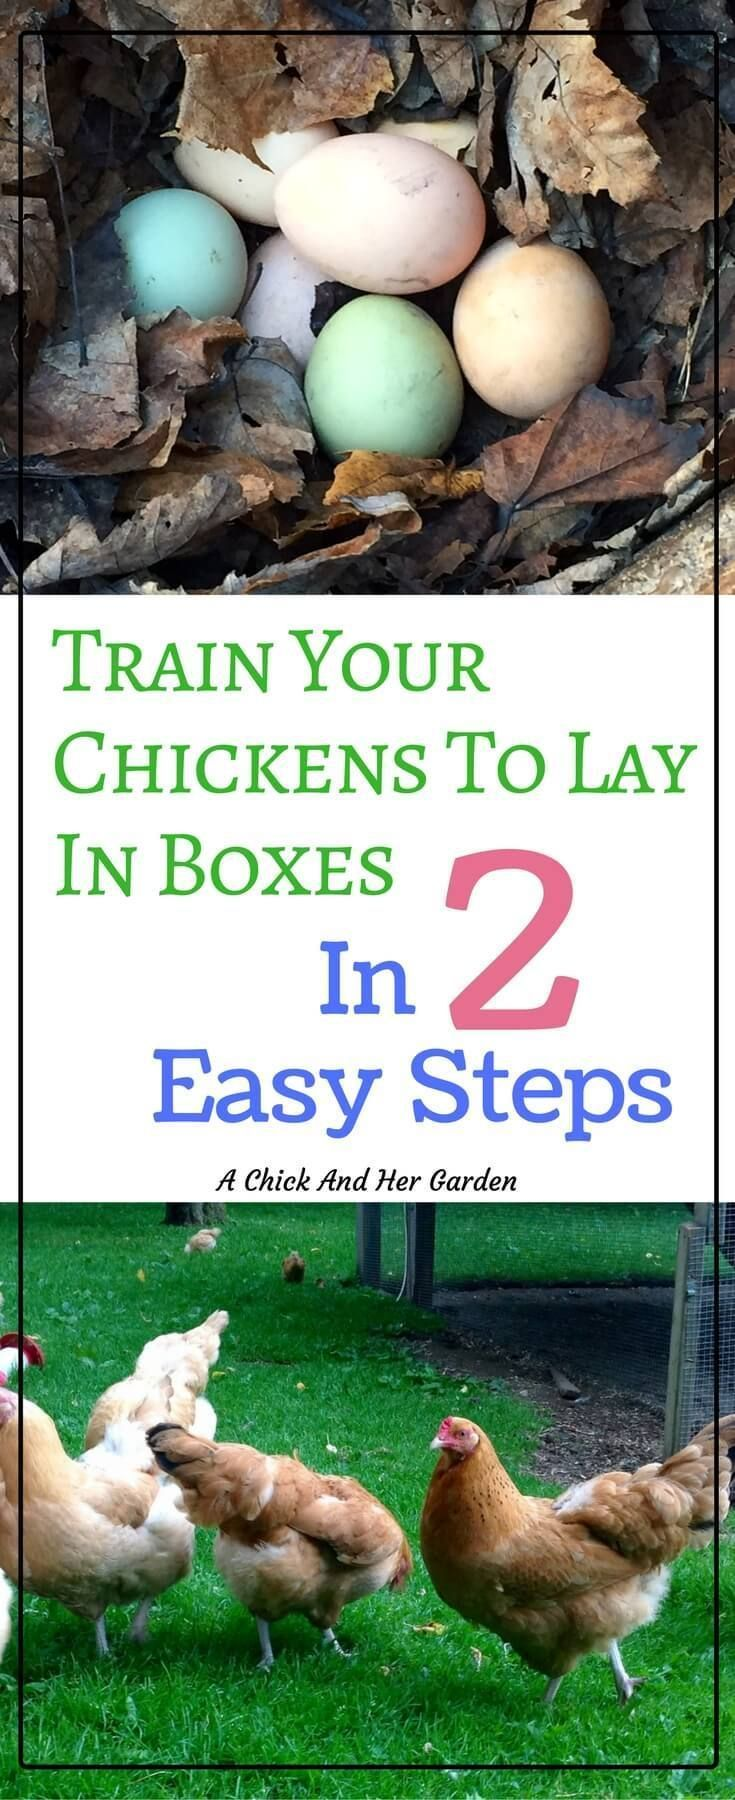 Going on an Easter Egg hunt everyday can be so frustrating! But all you need are these 2 steps and you can train your chickens to lay in the nesting boxes!